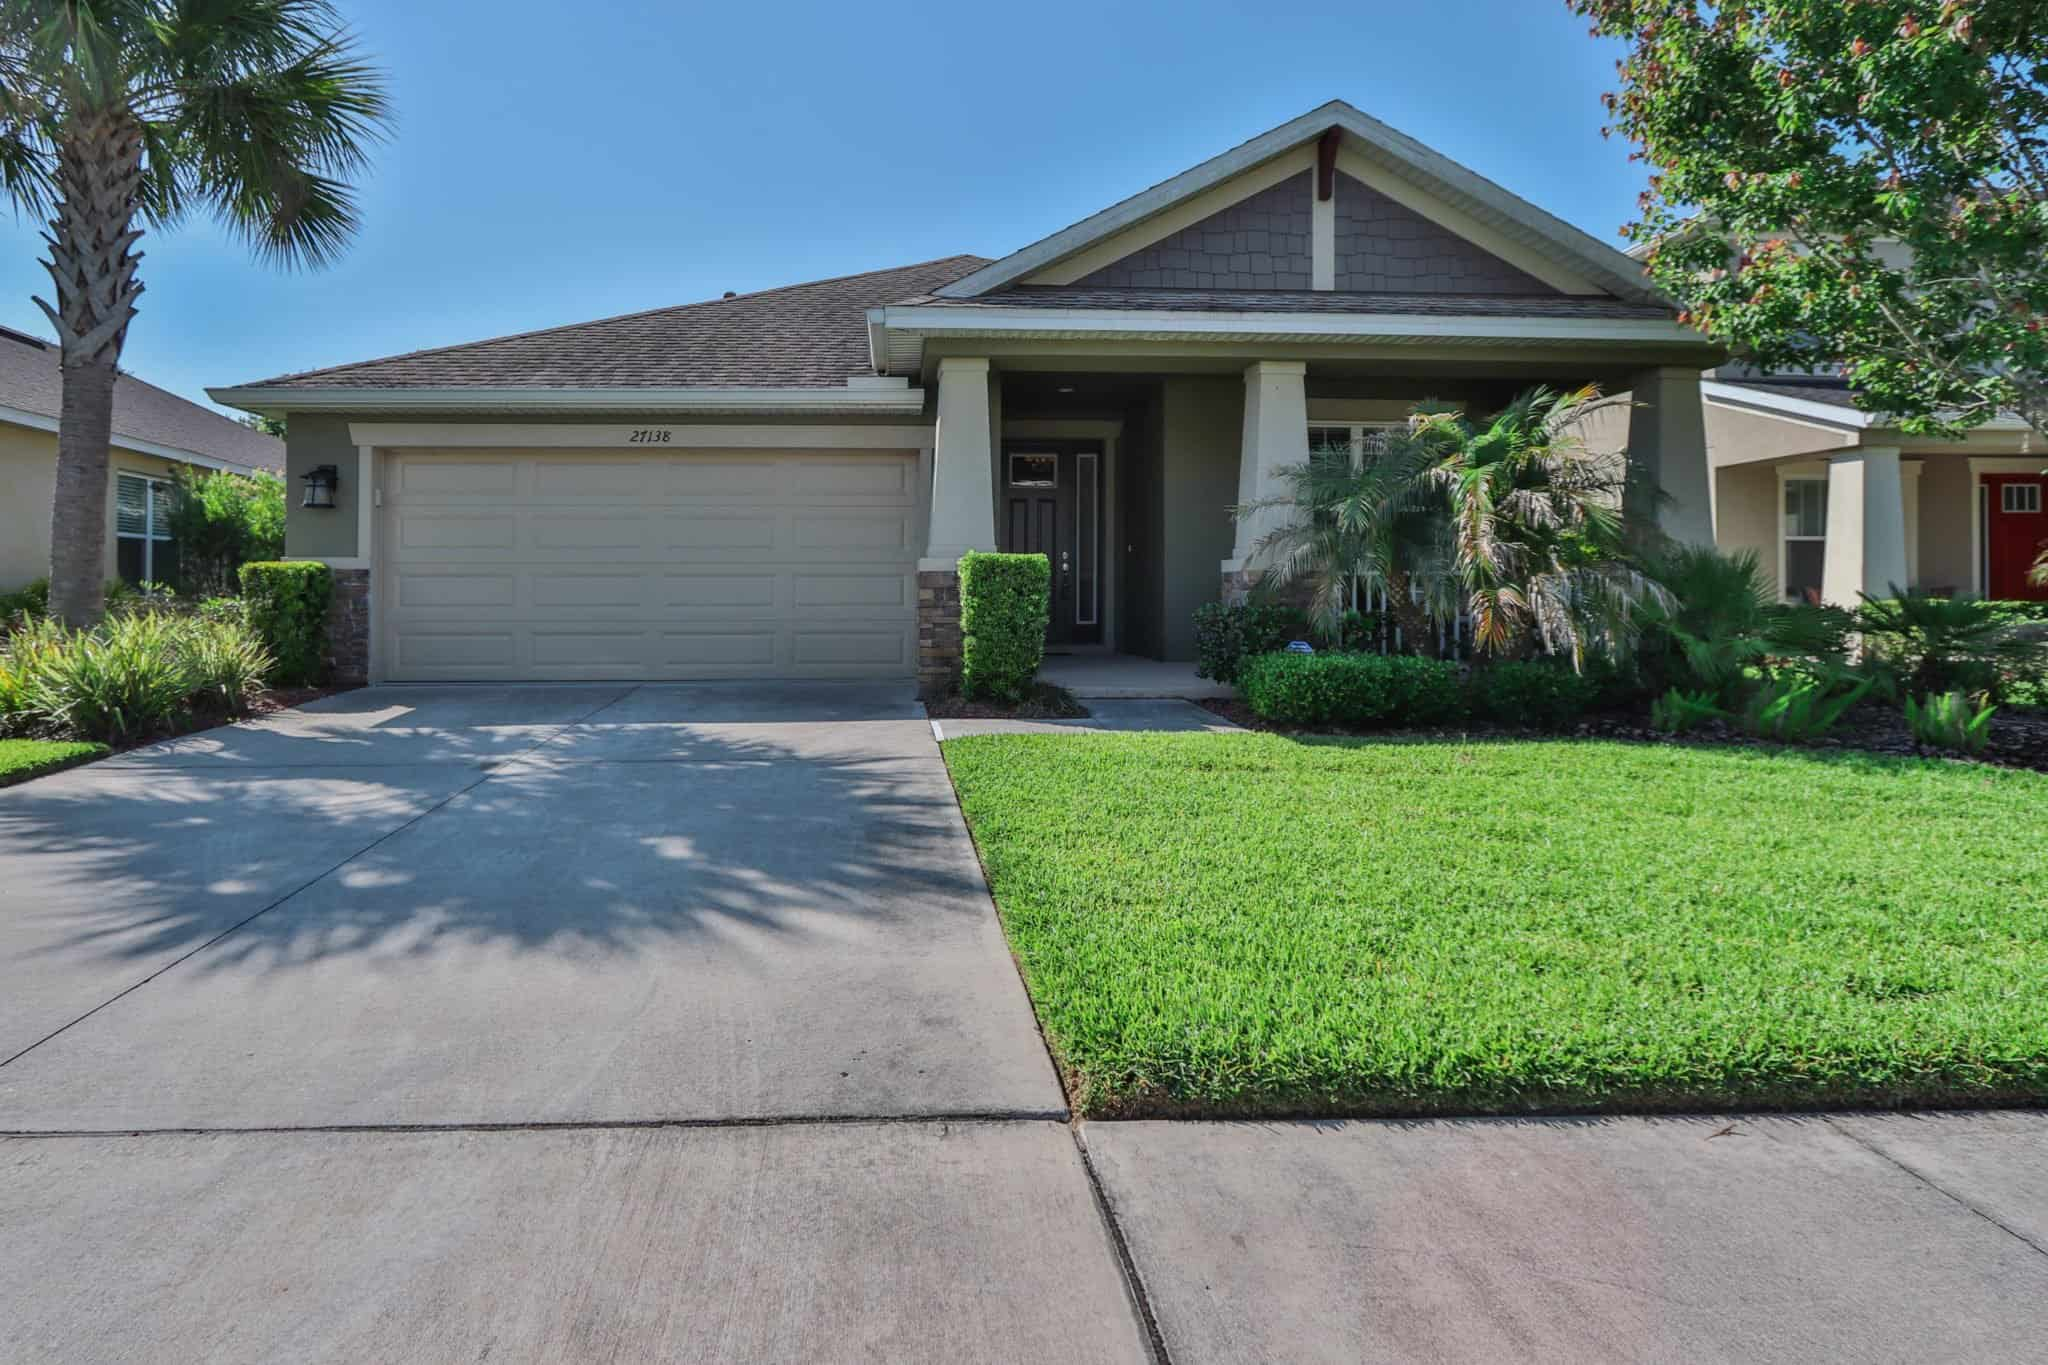 27138 EVERGREEN CHASE DR, WESLEY CHAPEL, FL 33544